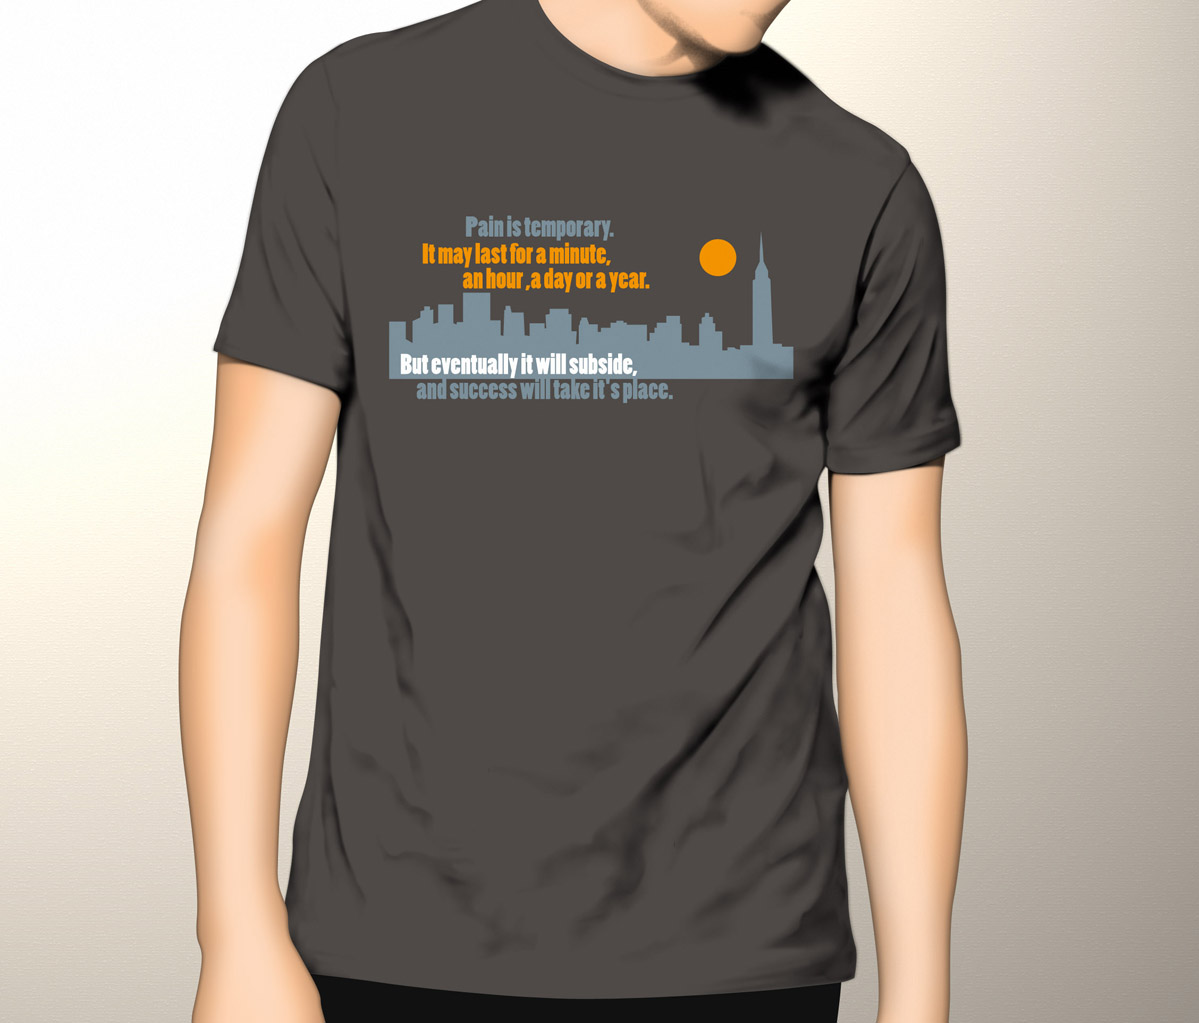 Upmarket Bold Clothing T Shirt Design For A Company By